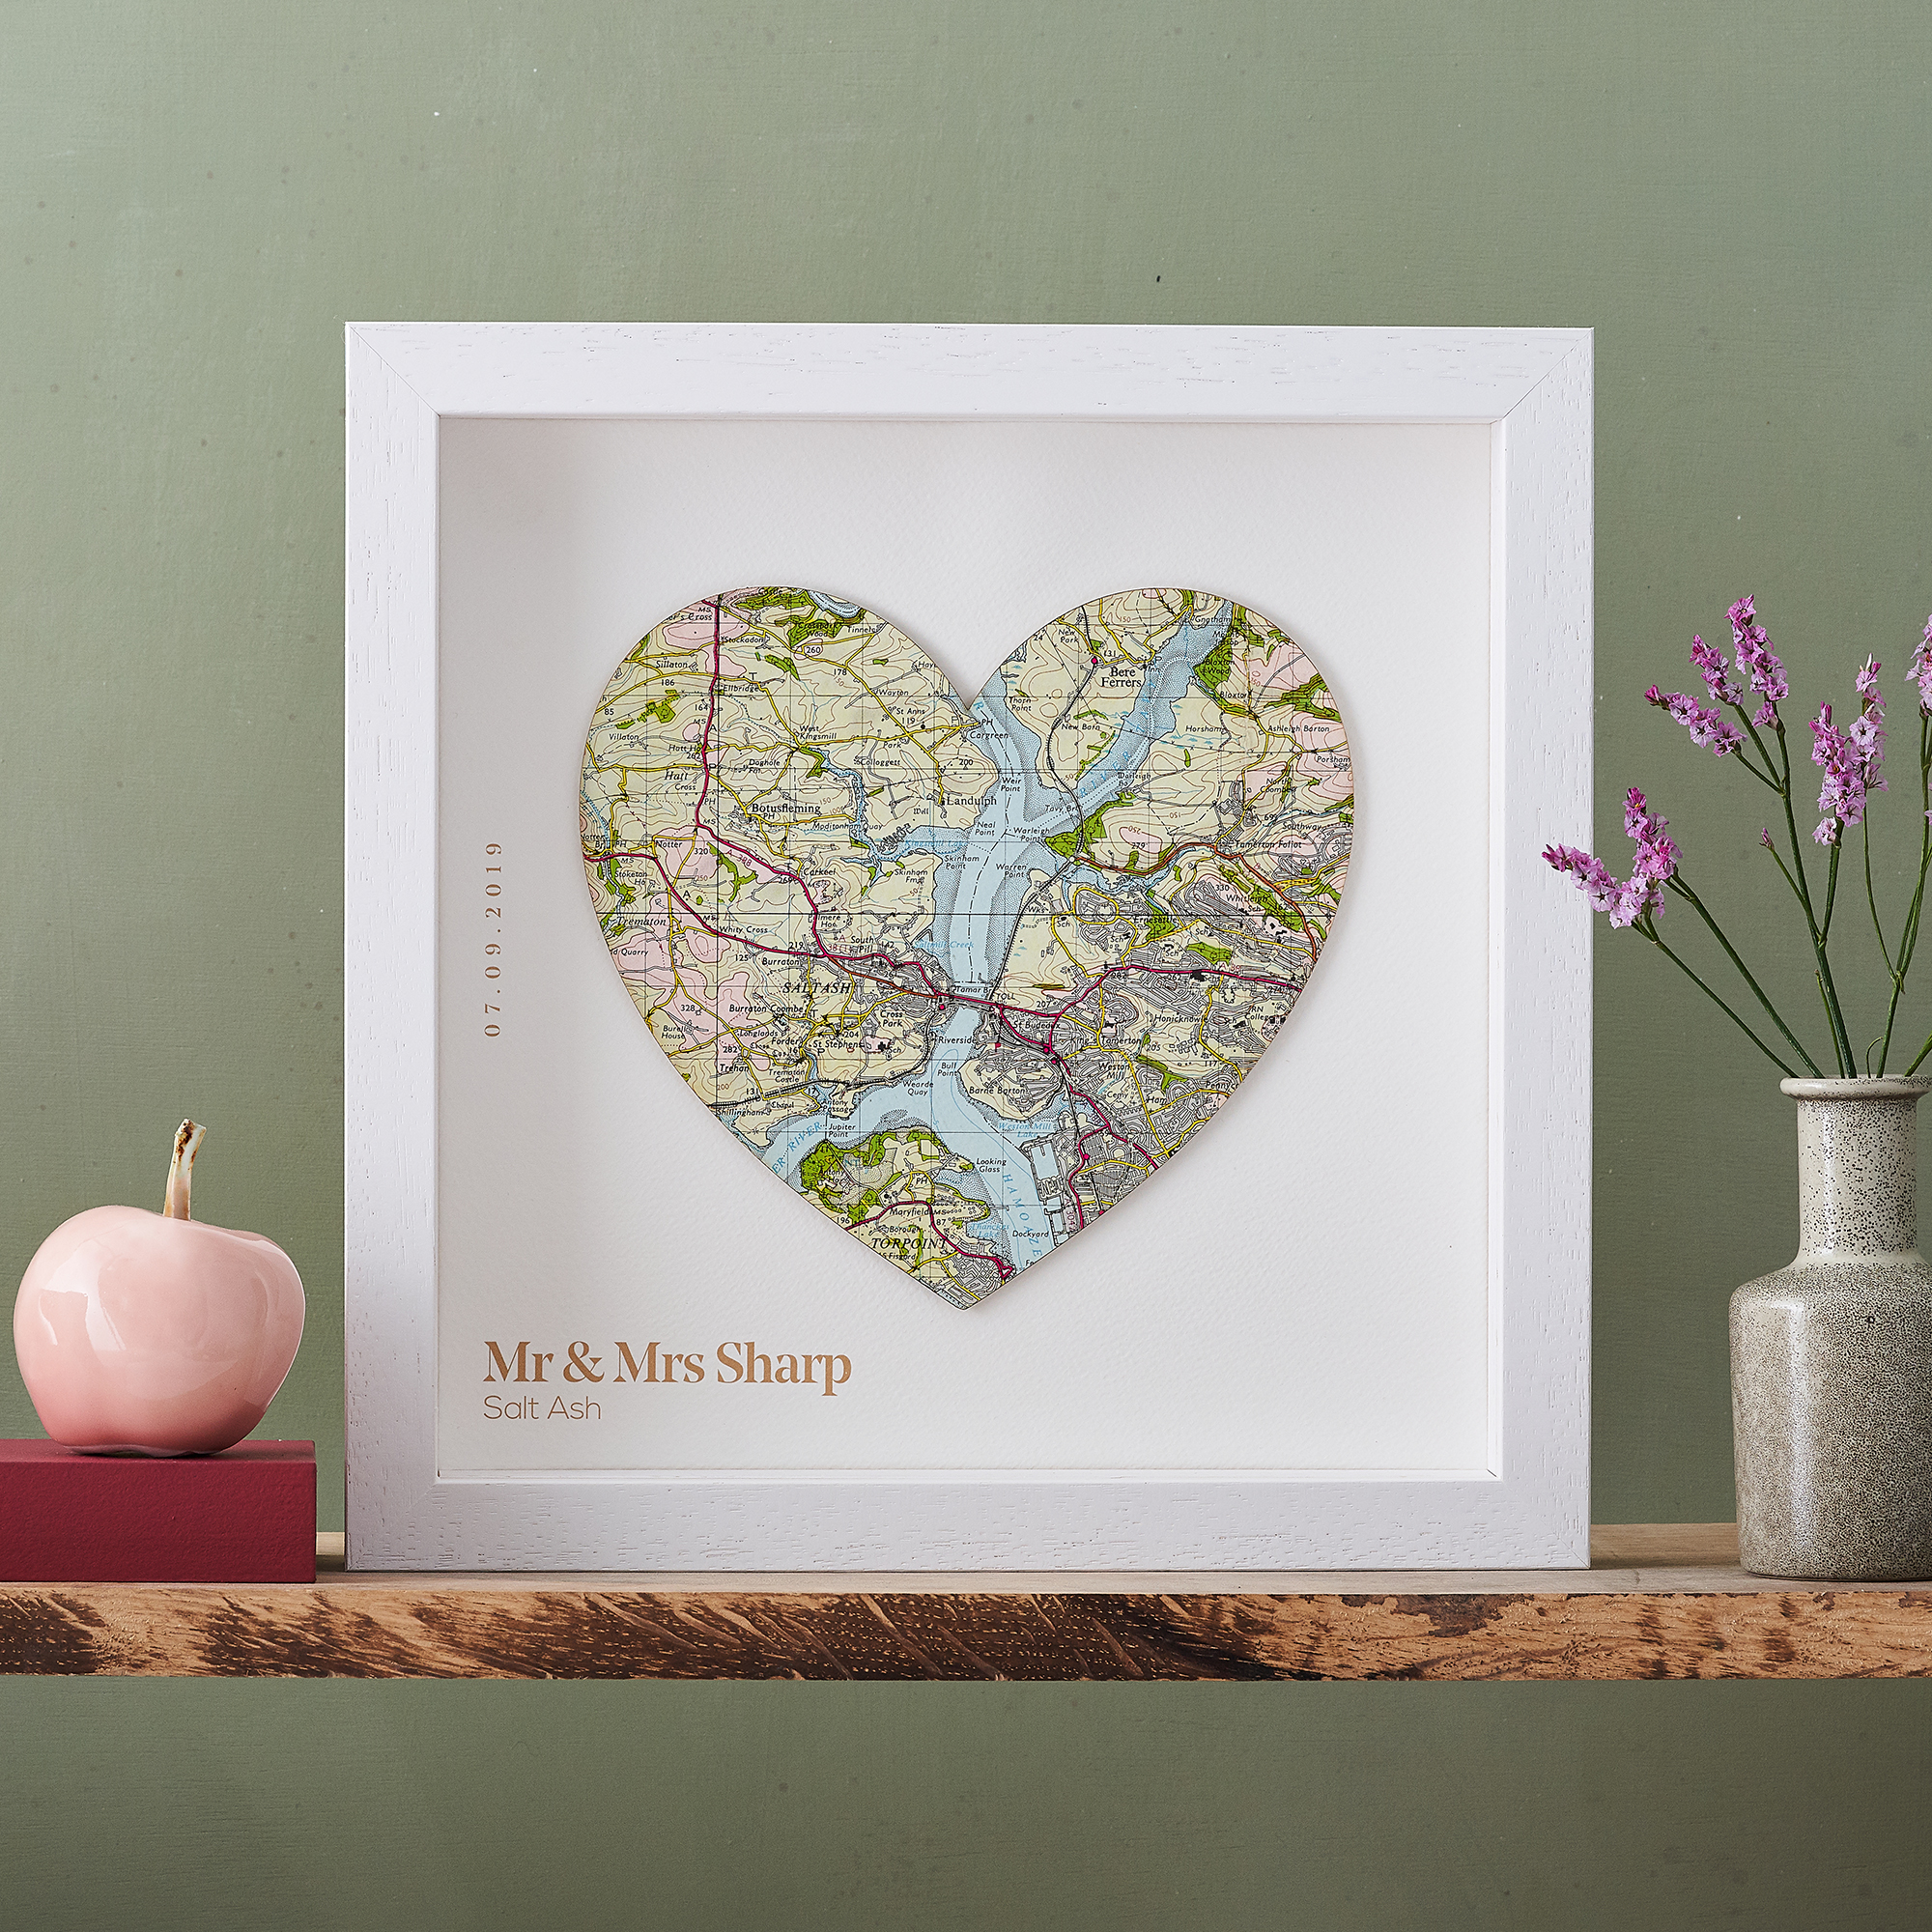 Map Heart framed in white on a green background.